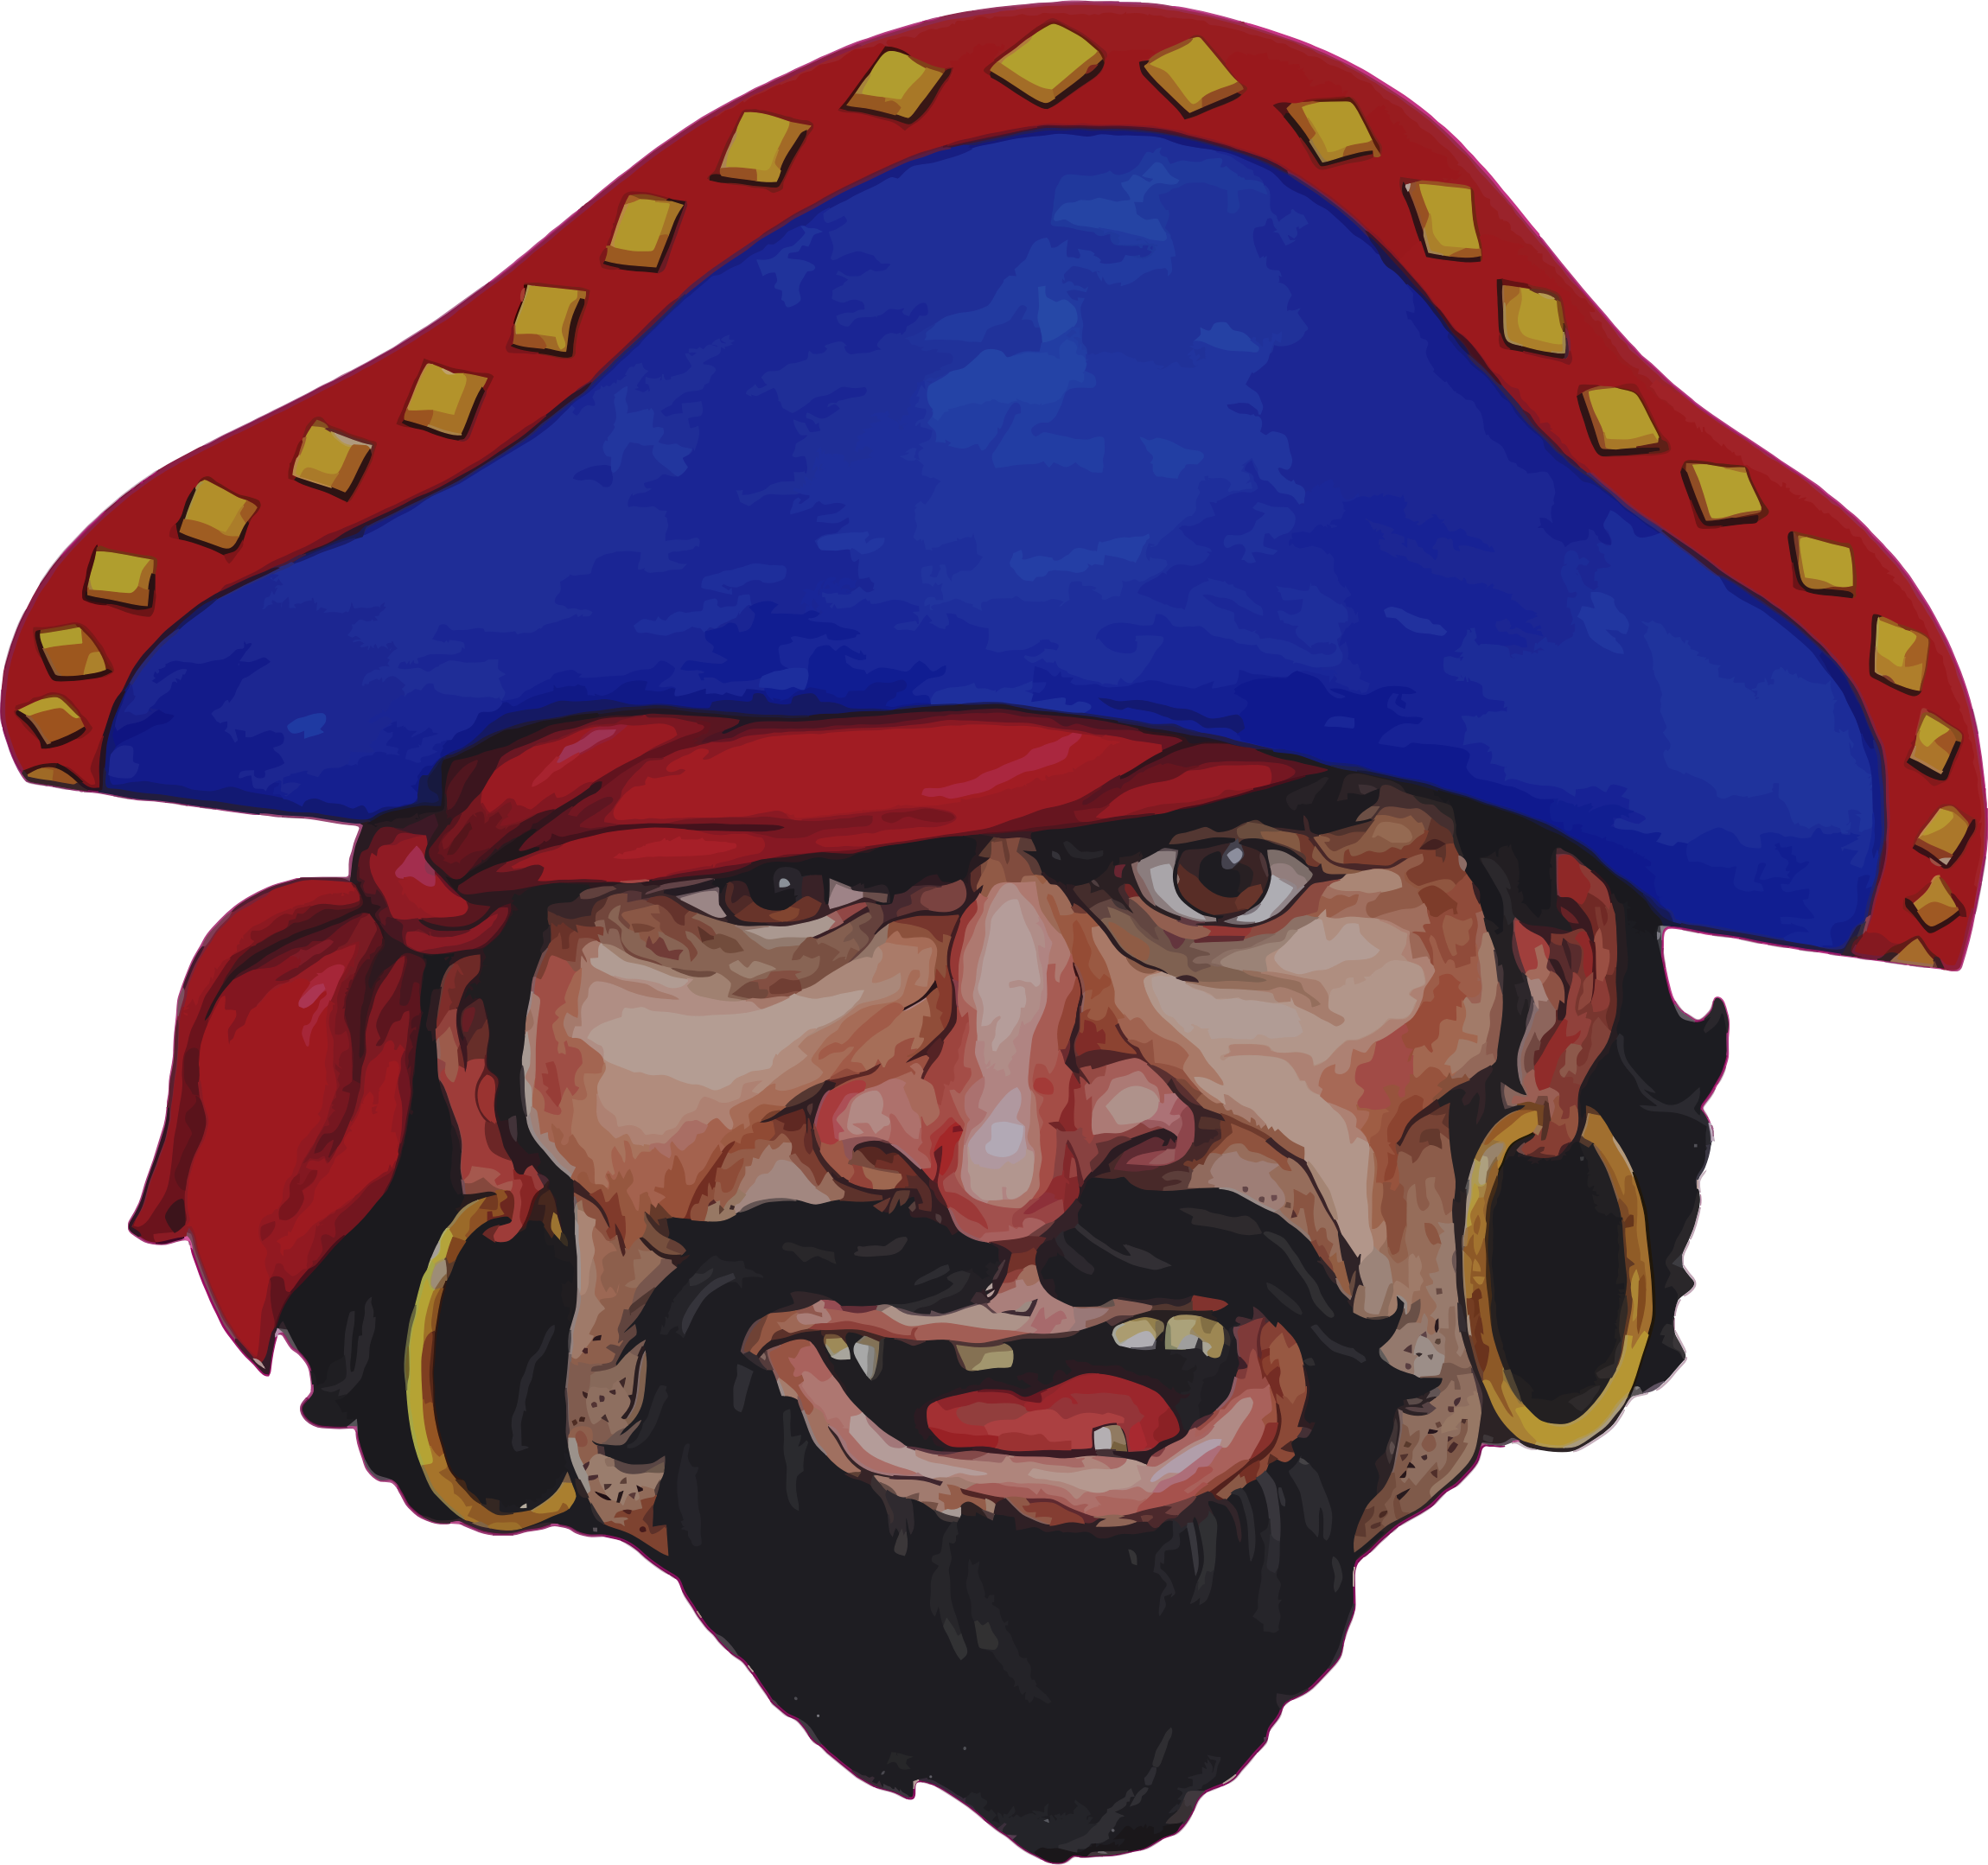 Realistic Pirate Illustration by GDJ